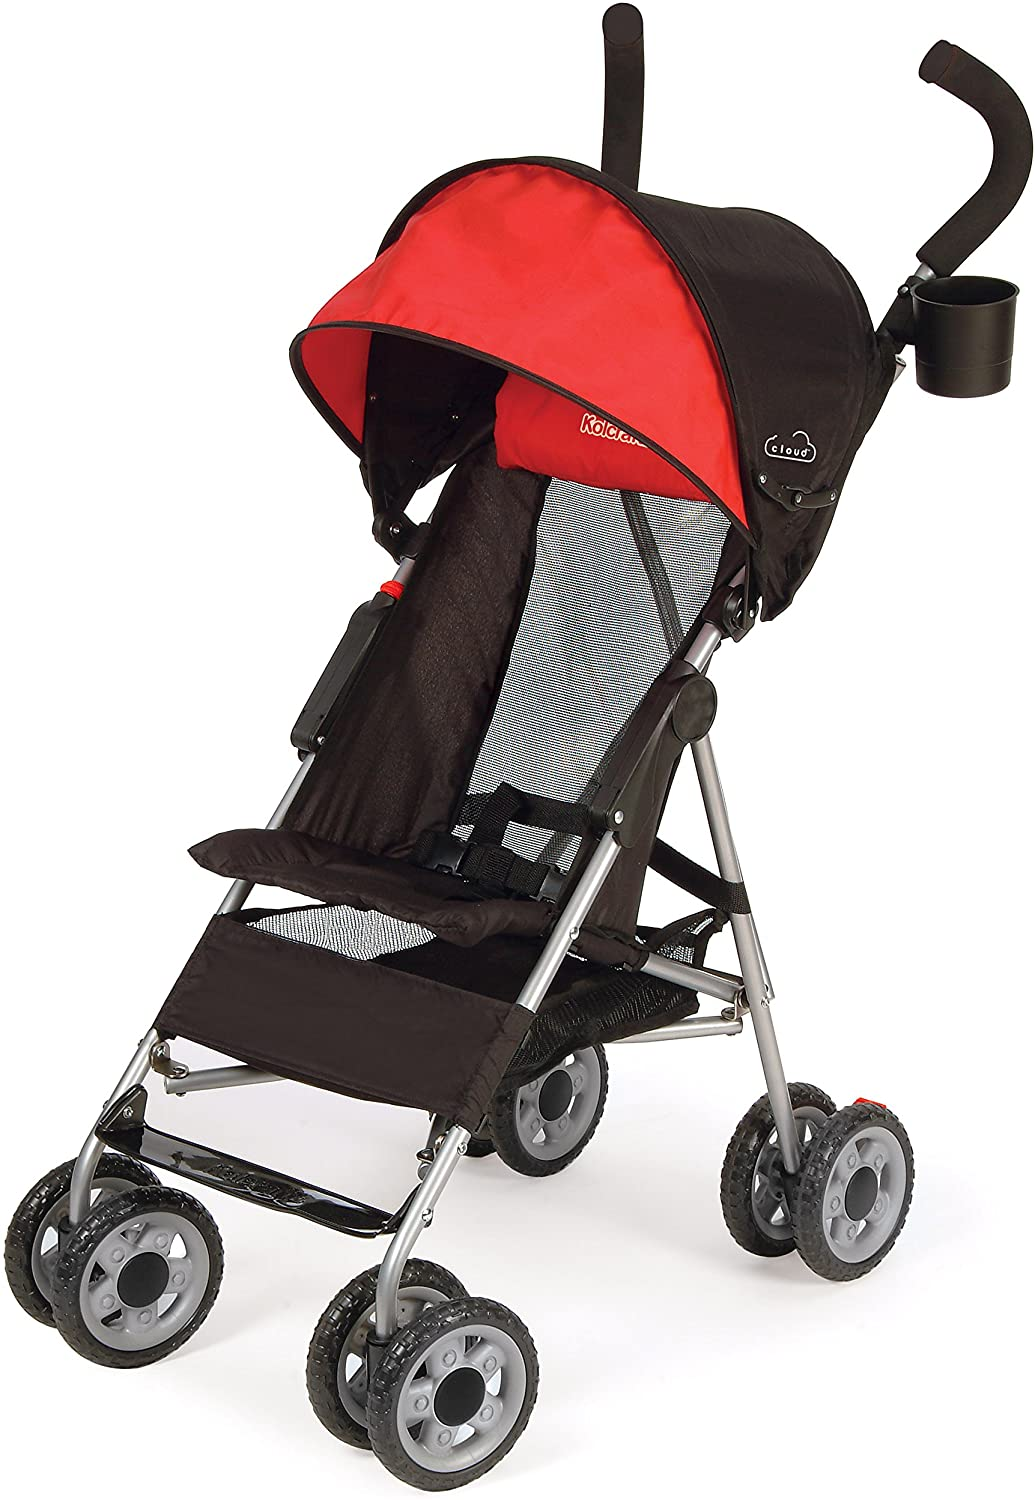 Kolcraft Cloud stroller for Disney trip with 3 year old baby